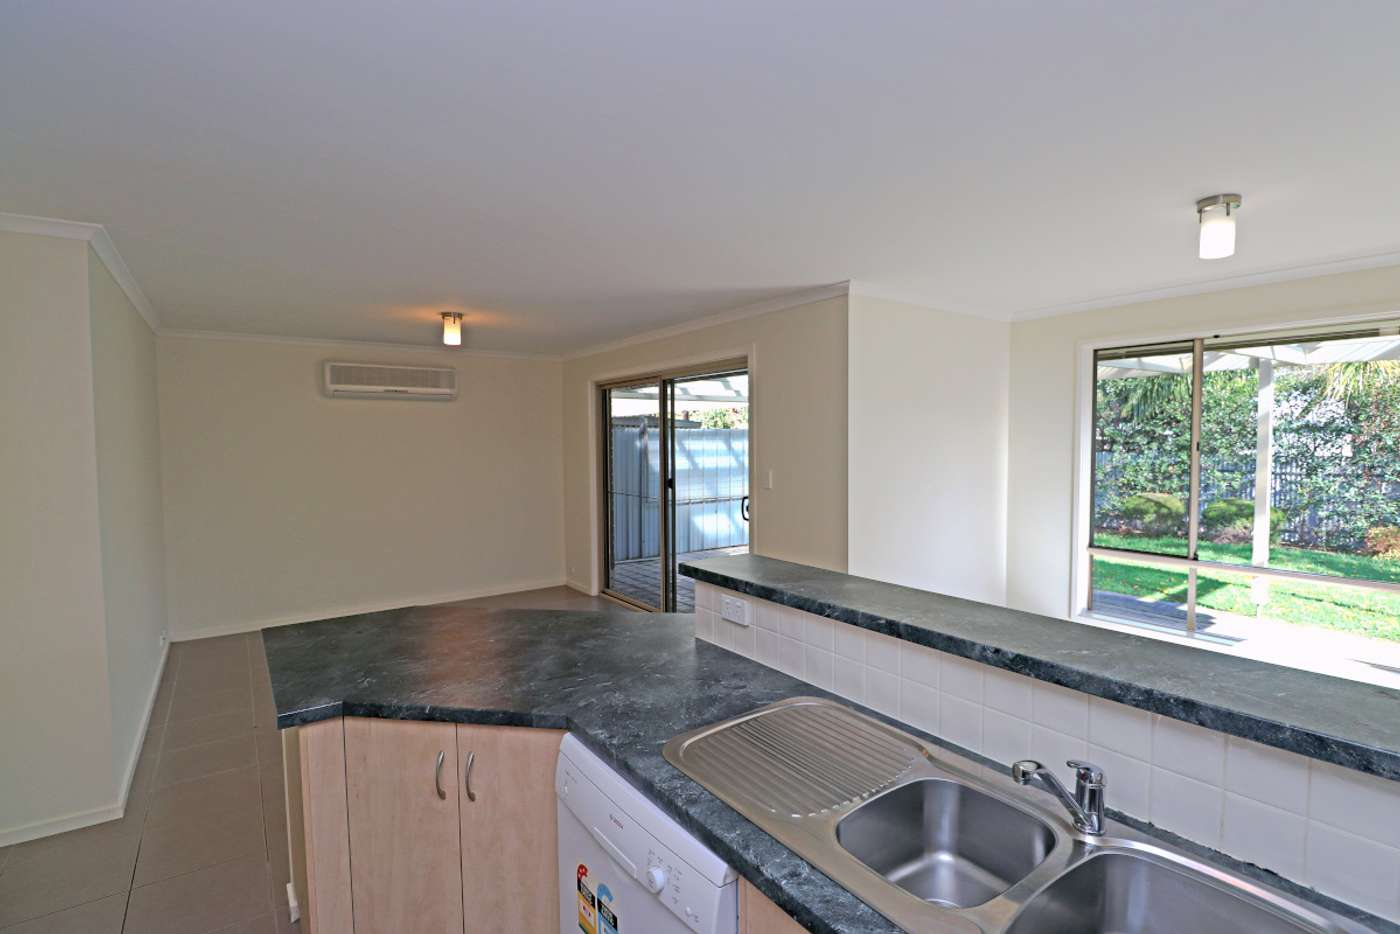 Sixth view of Homely house listing, 5A Inverell Avenue, Sturt SA 5047